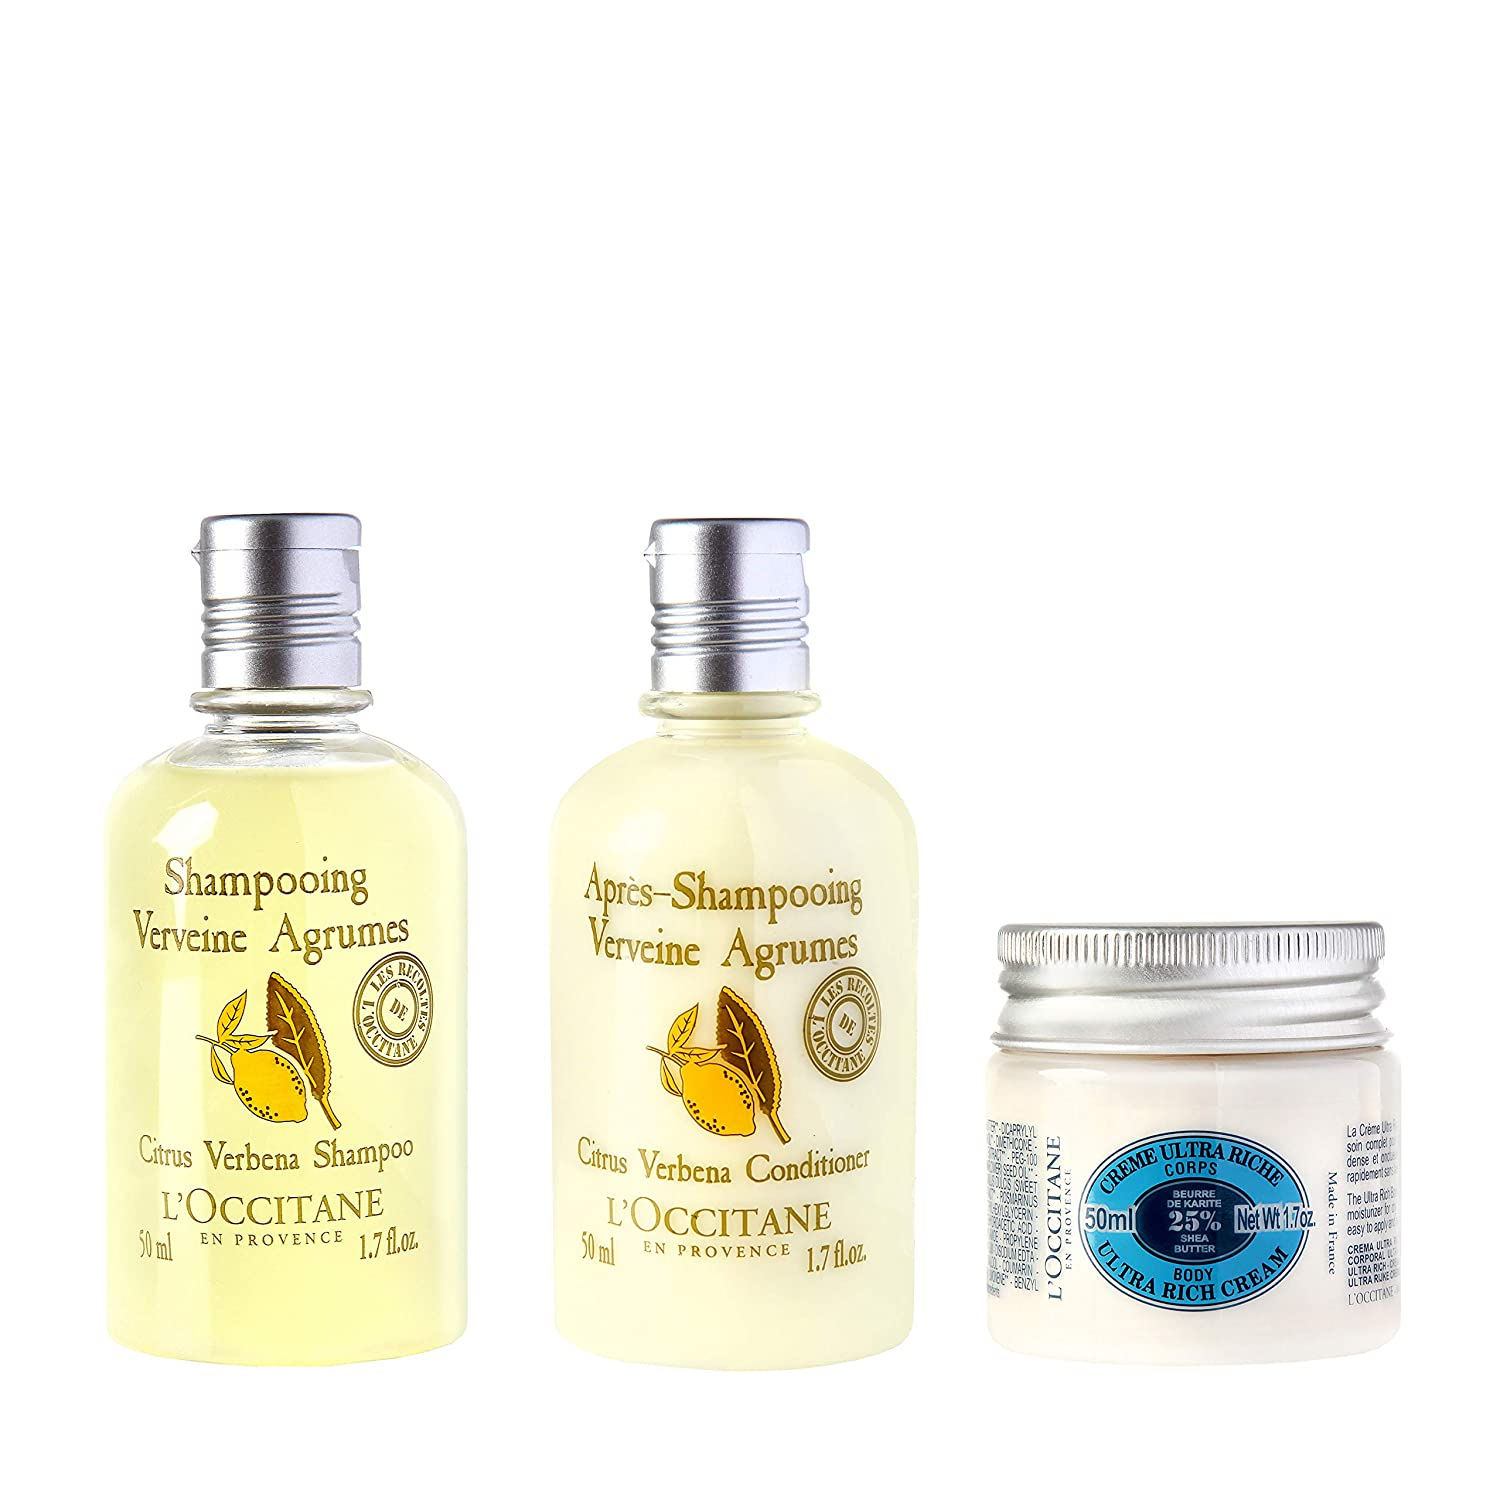 L'Occitane Body & Hair Care 3-piece Travel Kit with Body Cream, Shampoo, and Conditioner